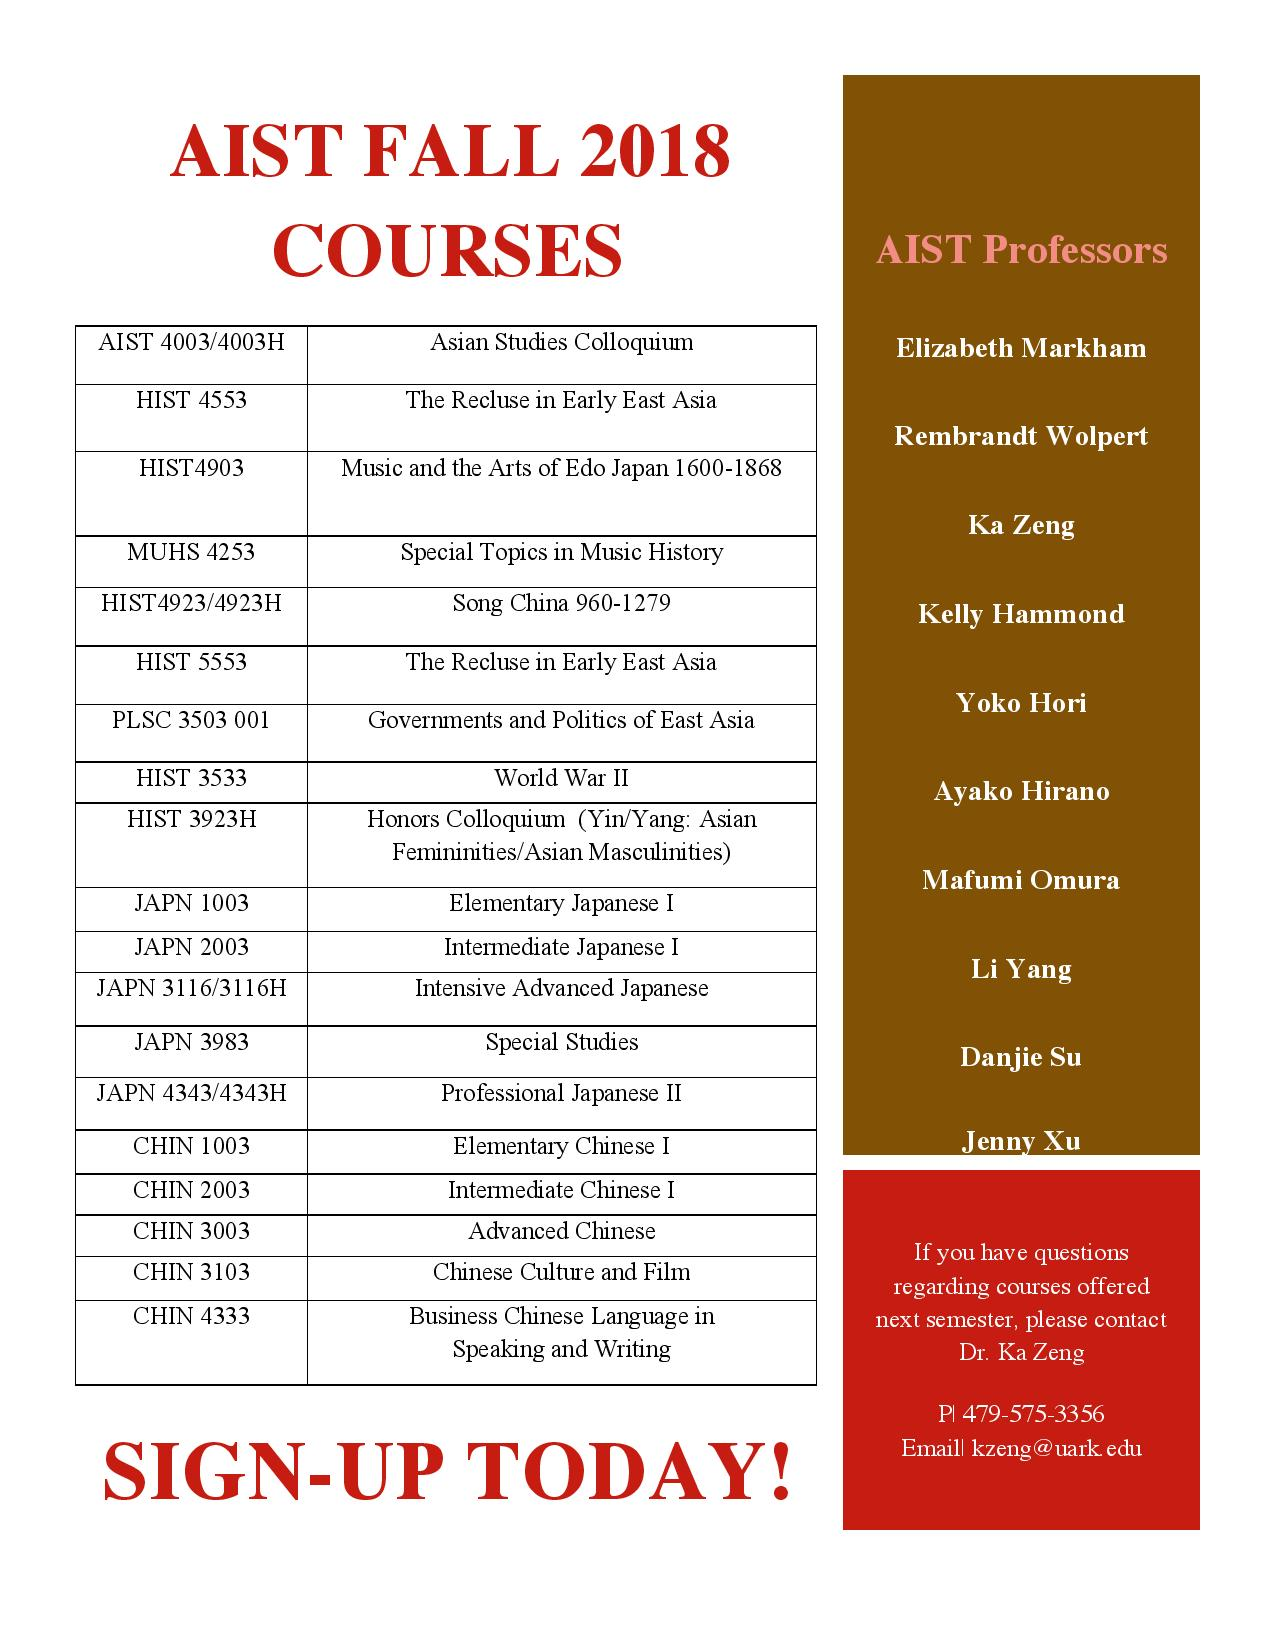 AIST Fall 2018 Courses